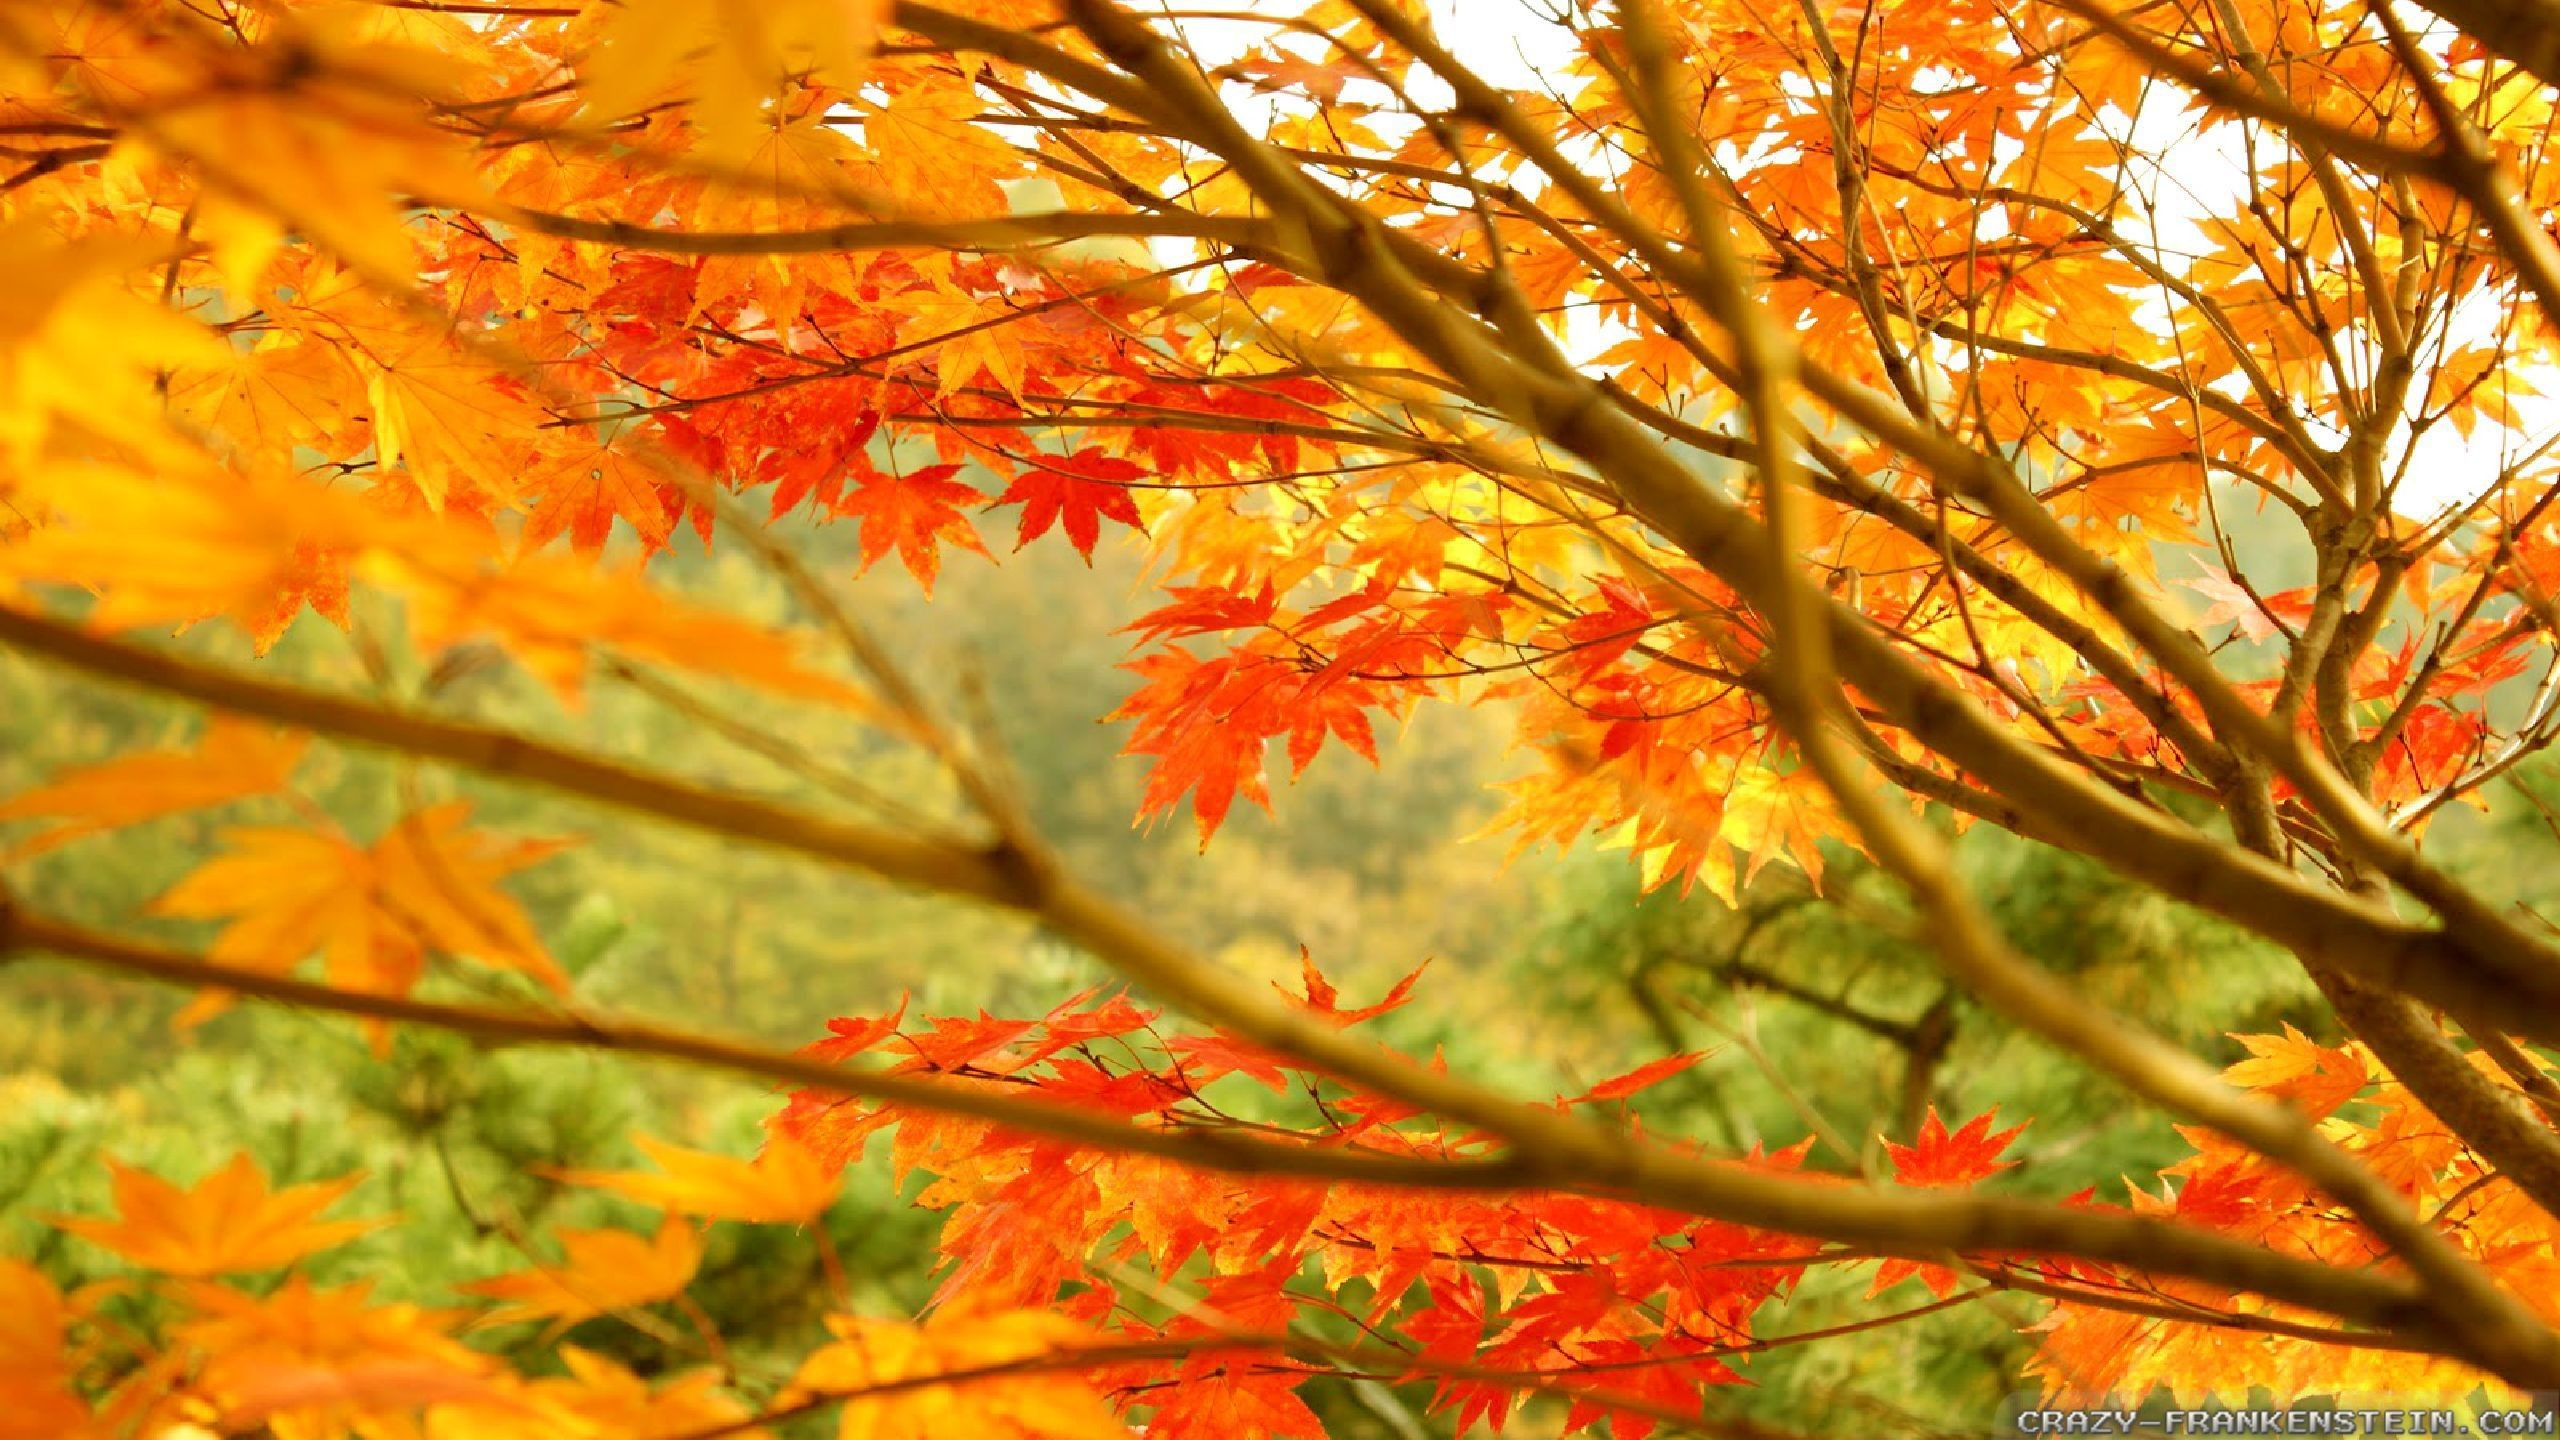 Autumn Tree Leaf Fall Animated Wallpaper Autumn Scenery Wallpaper 57 Images